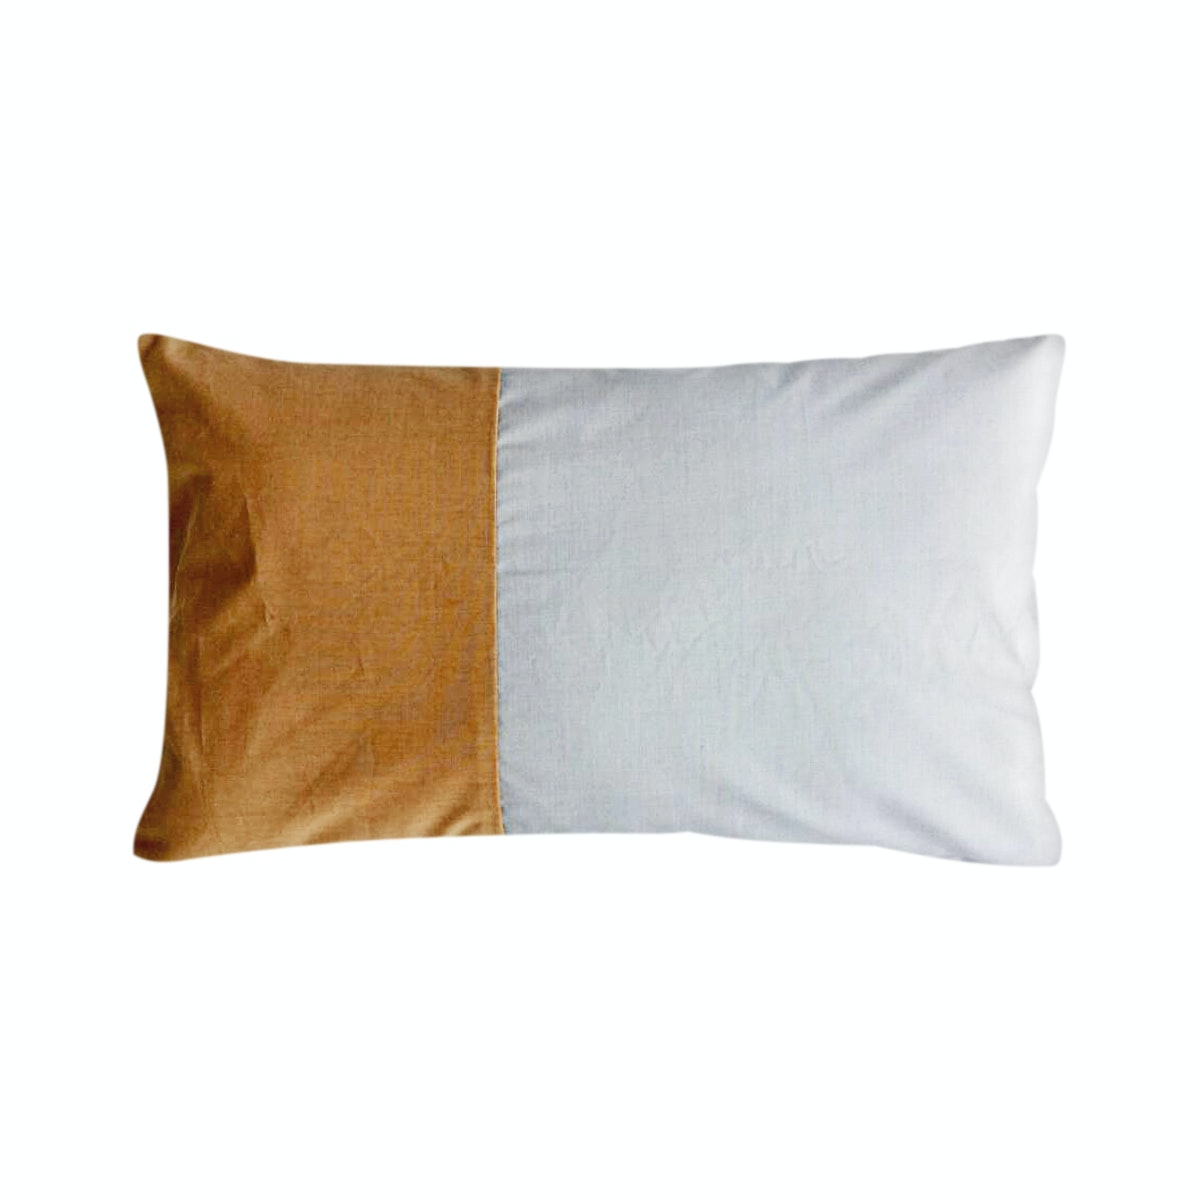 Stiletto Living Blaster Grey Mix Brown Cushion Cover 50x30cm